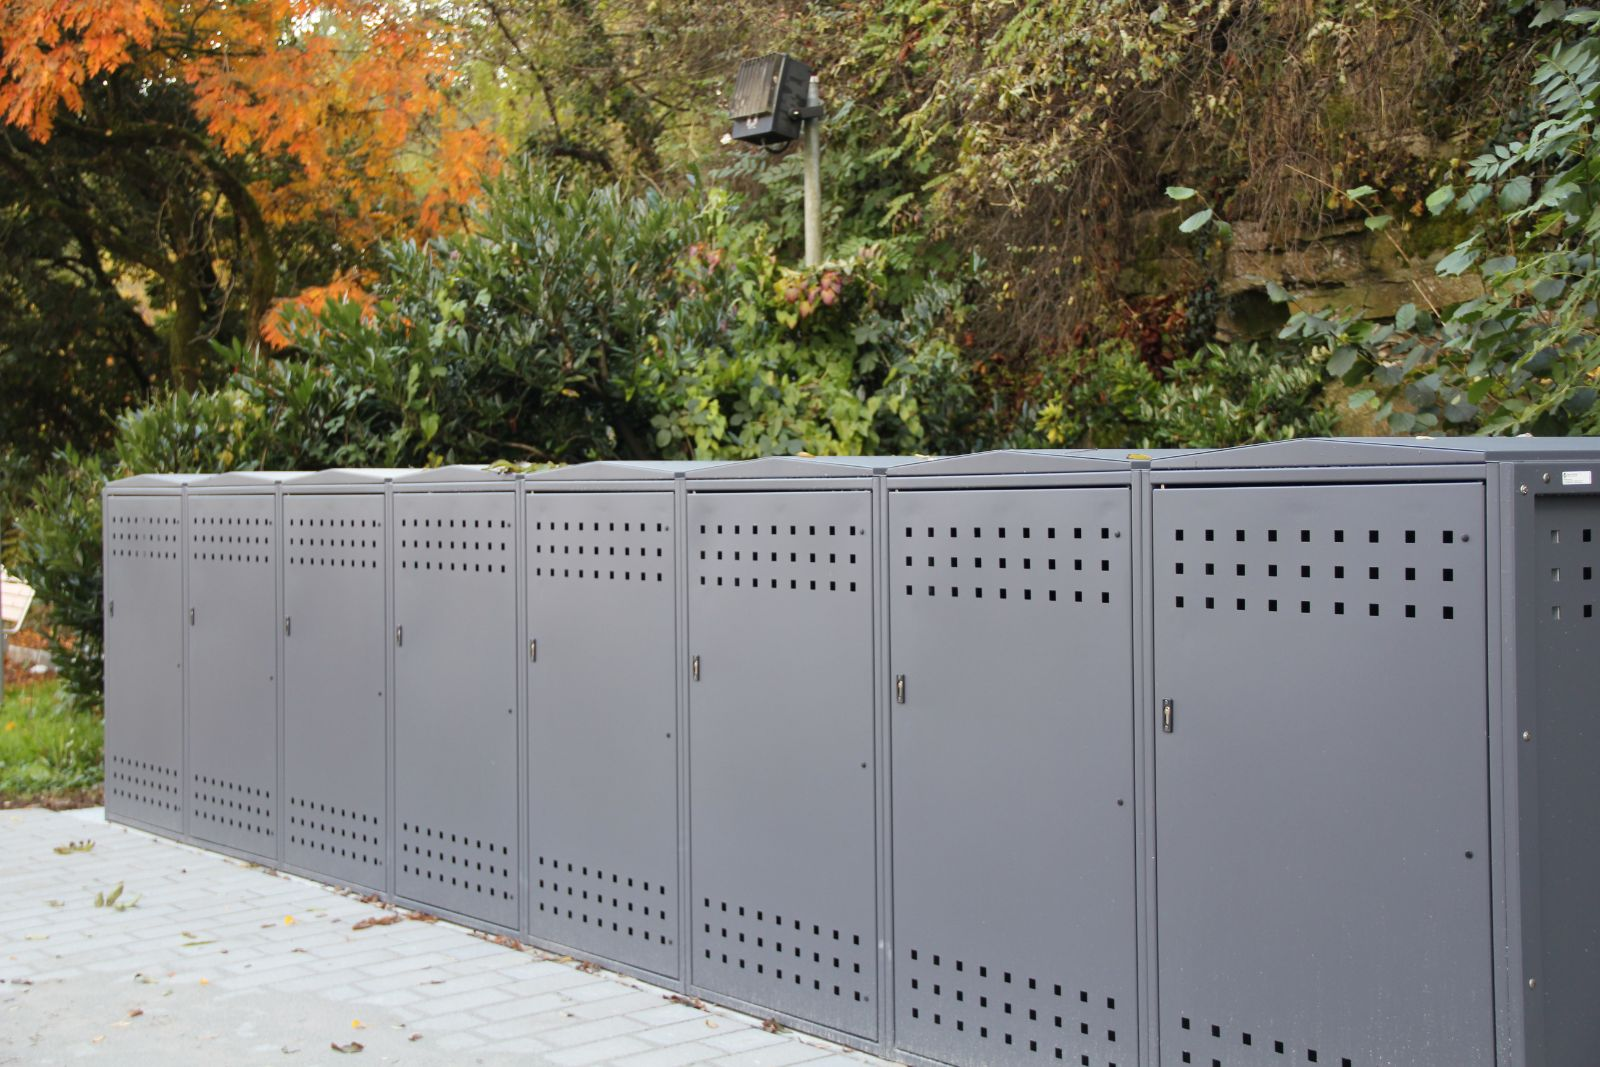 euroform w - urban furniture - bike box - bike storage